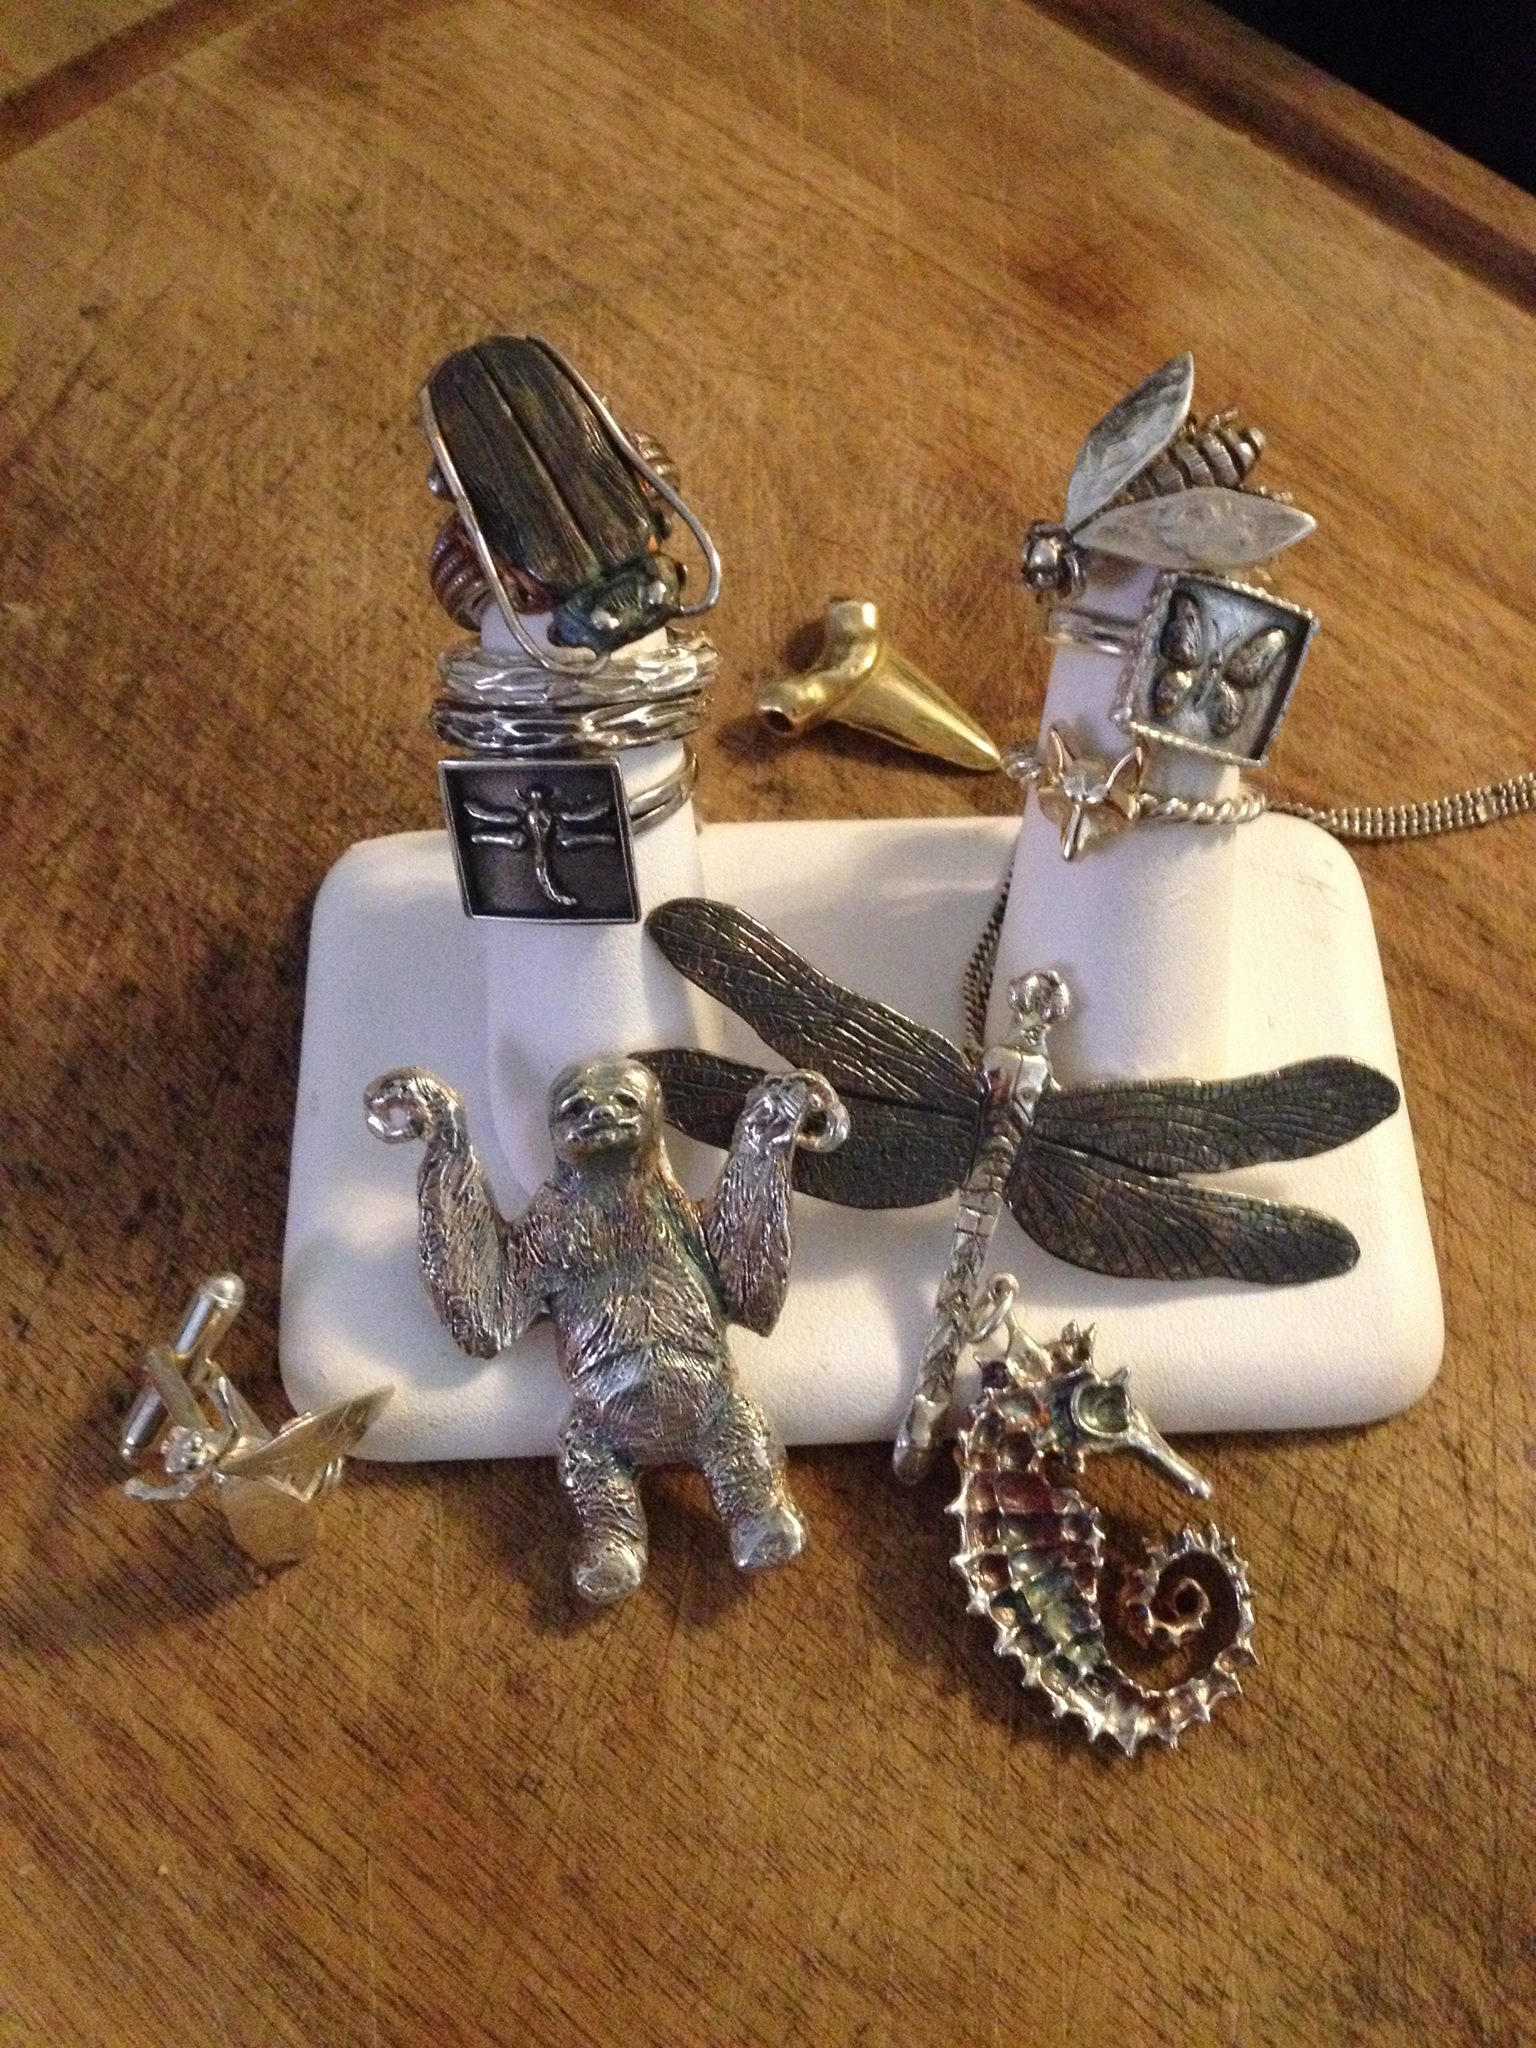 A selection of carved micro sculptural jewellery